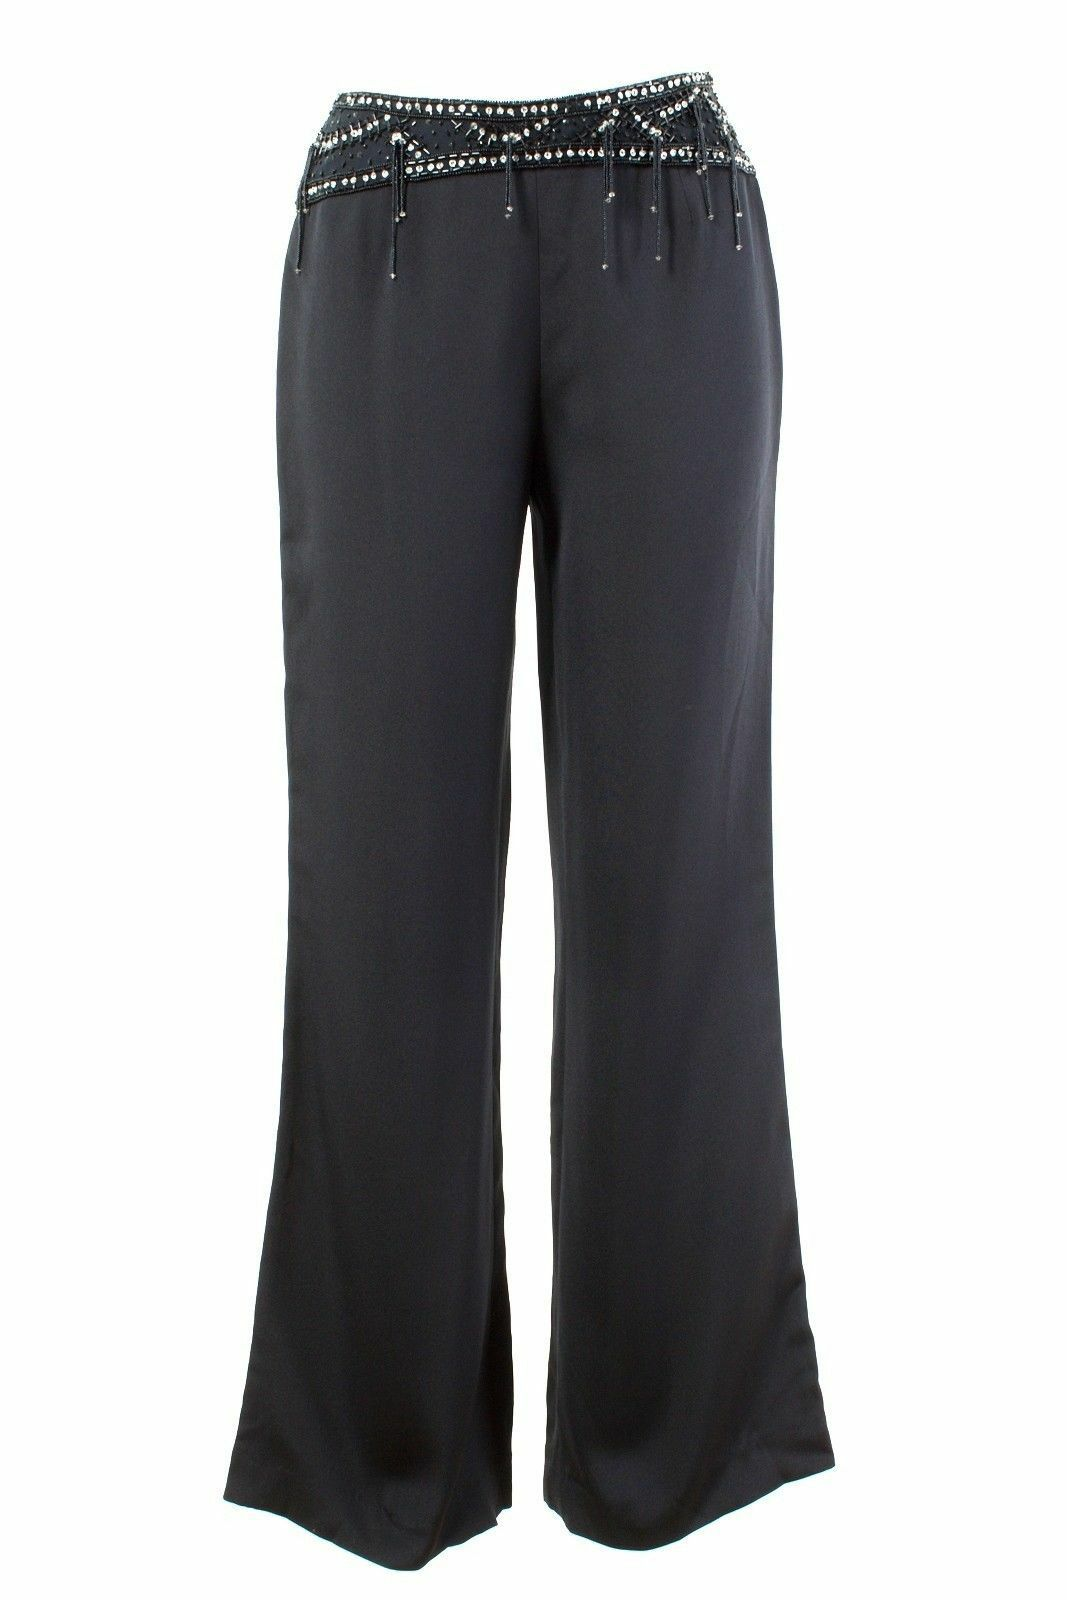 ESCADA Trousers Größe 34 XS 100% Silk Evening Trousers With Bead Embroidery Silk Pants